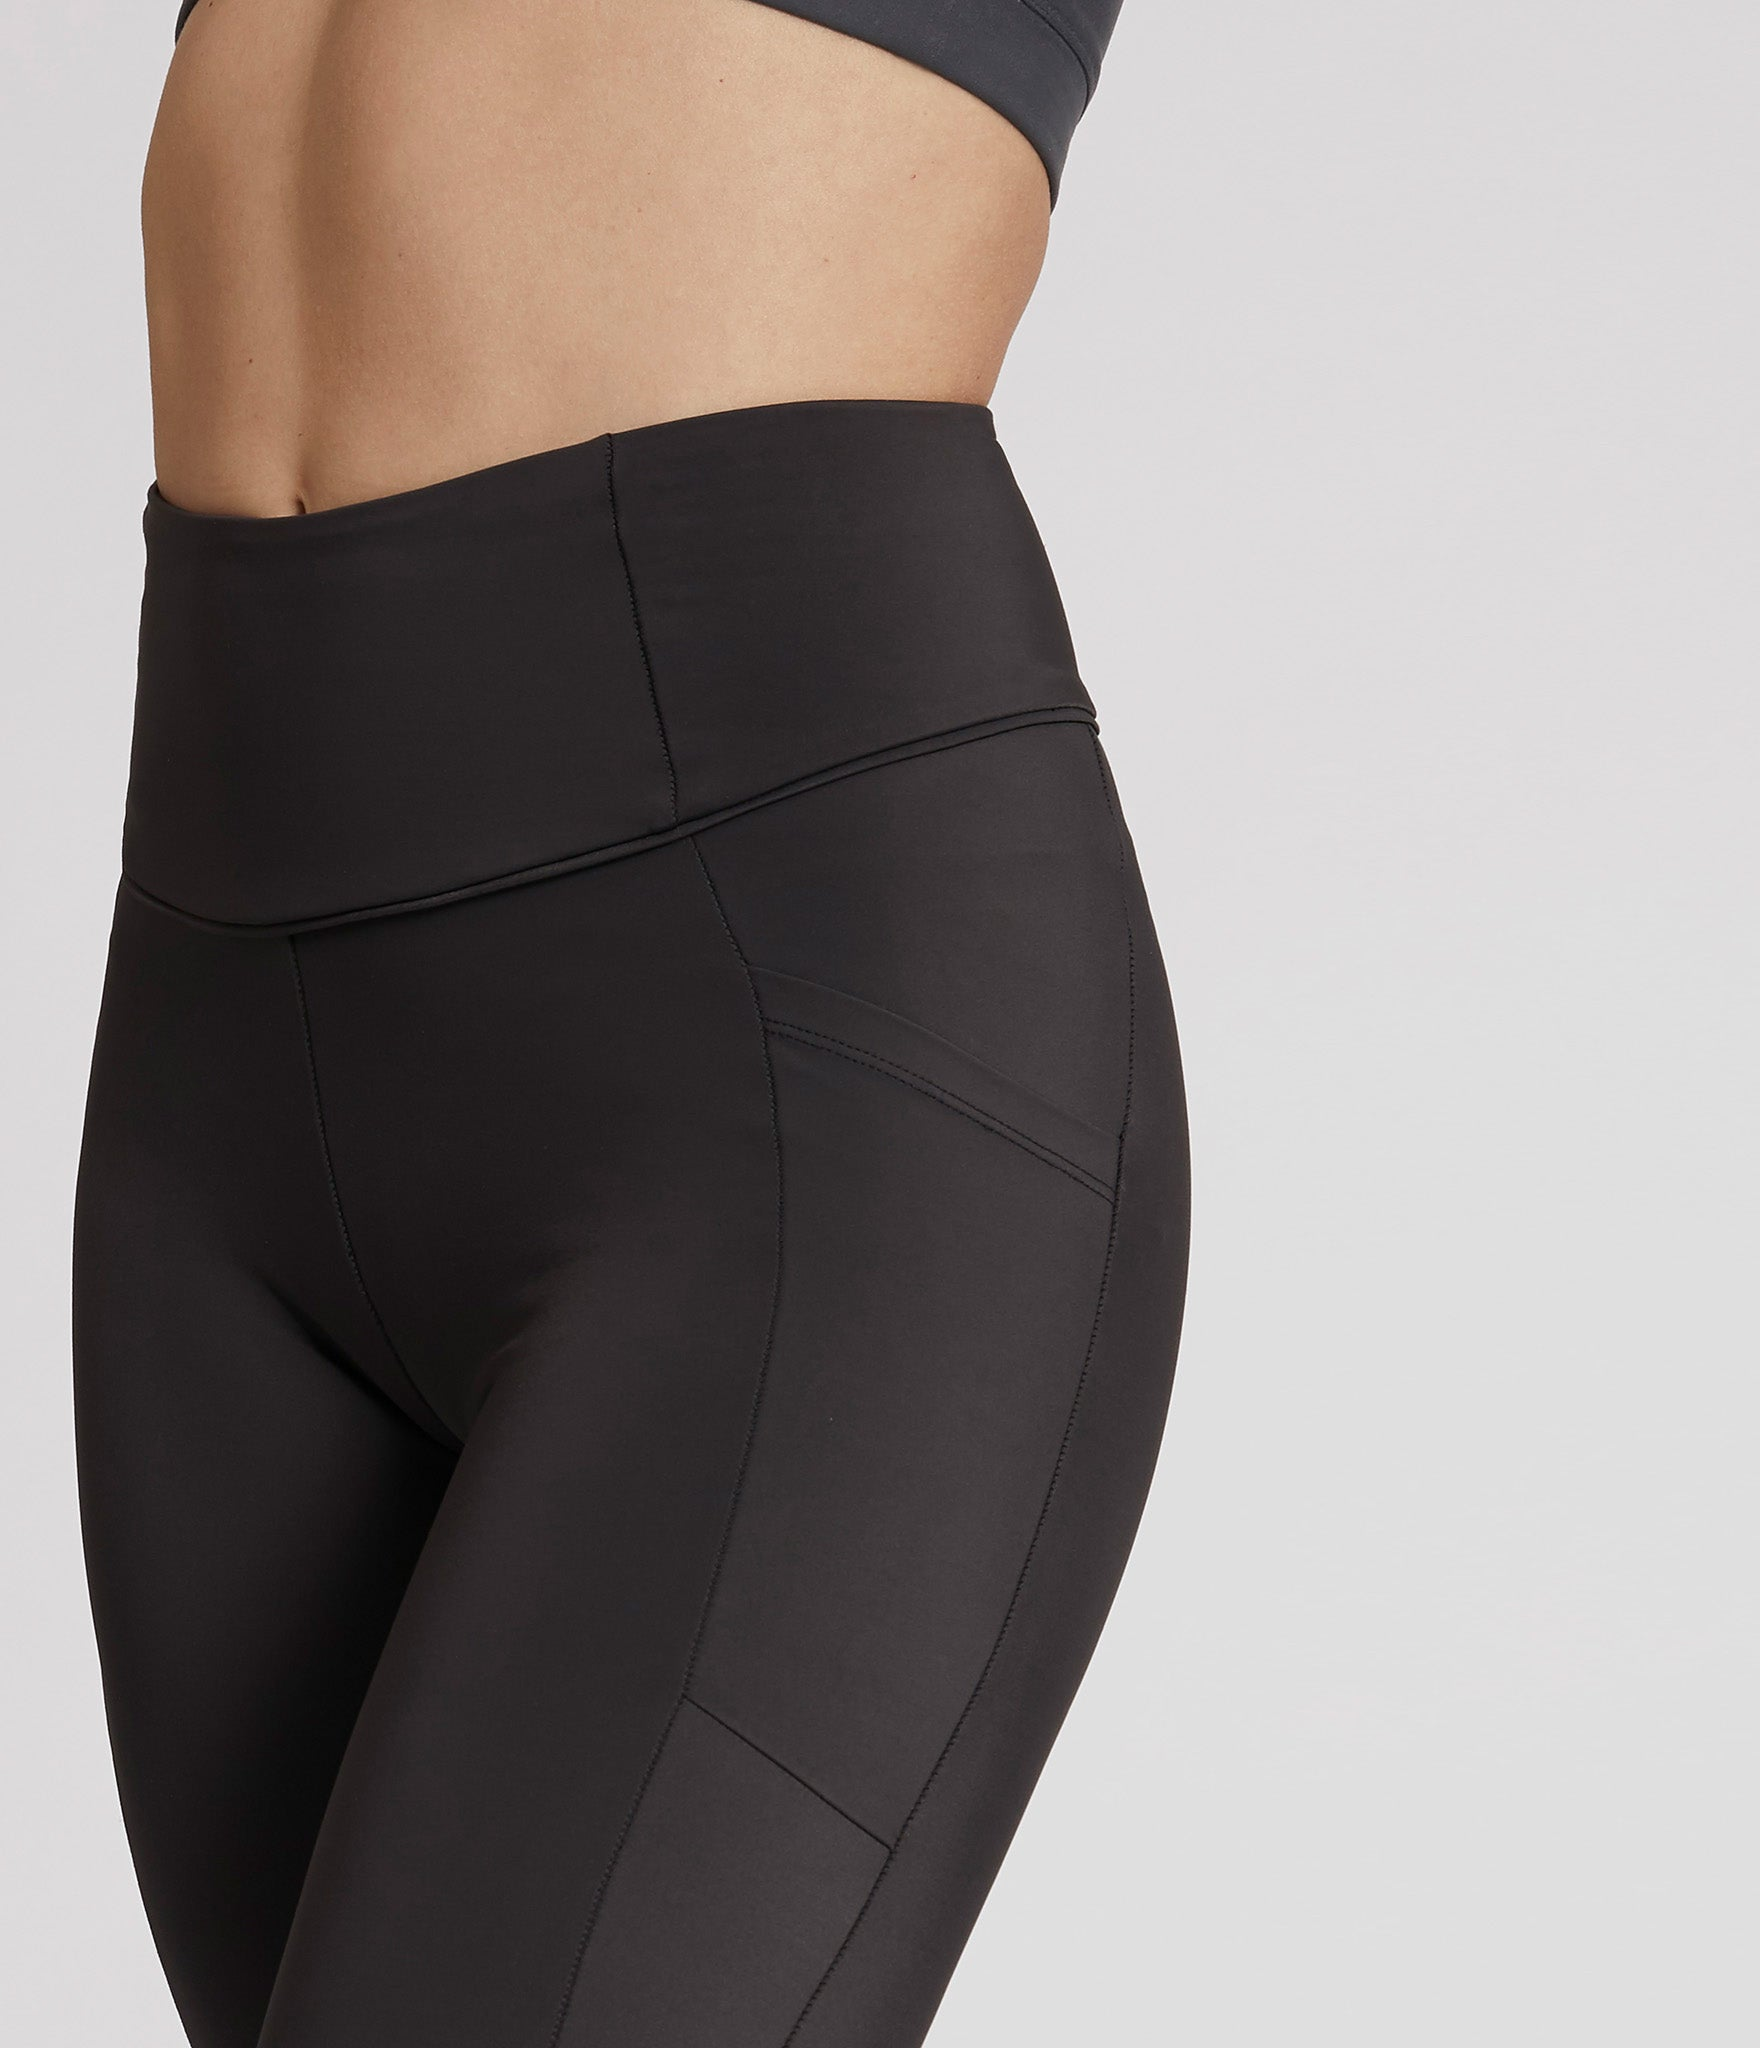 Quebec leggings</br>Liquorice